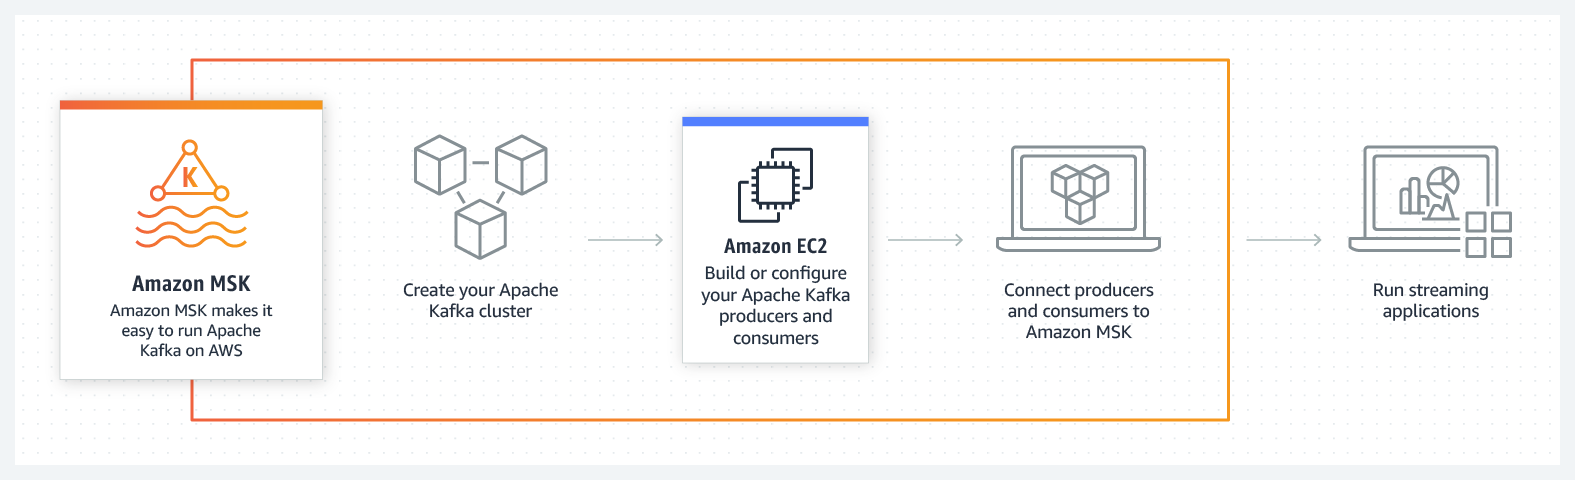 Diagram cara kerja Amazon MSK